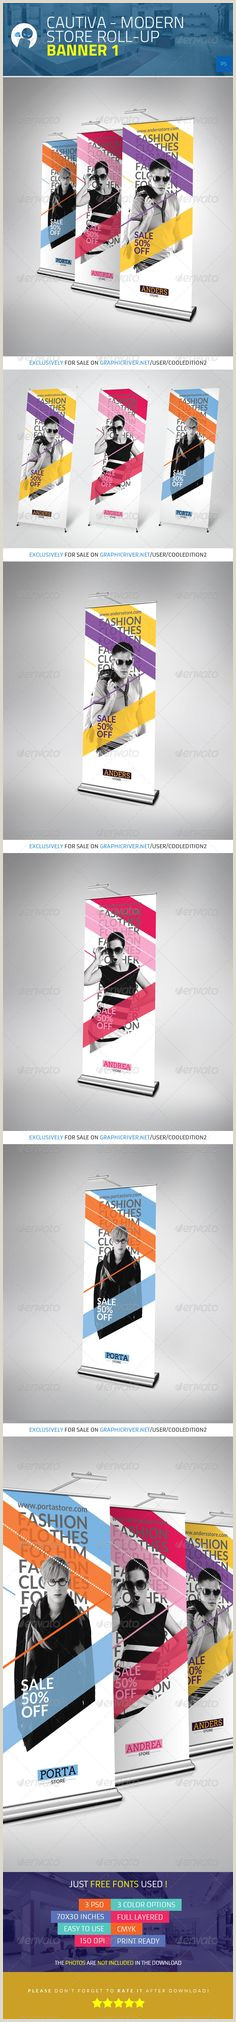 Pull Out Banners 40 Mejores Imágenes De Roll Up Banner